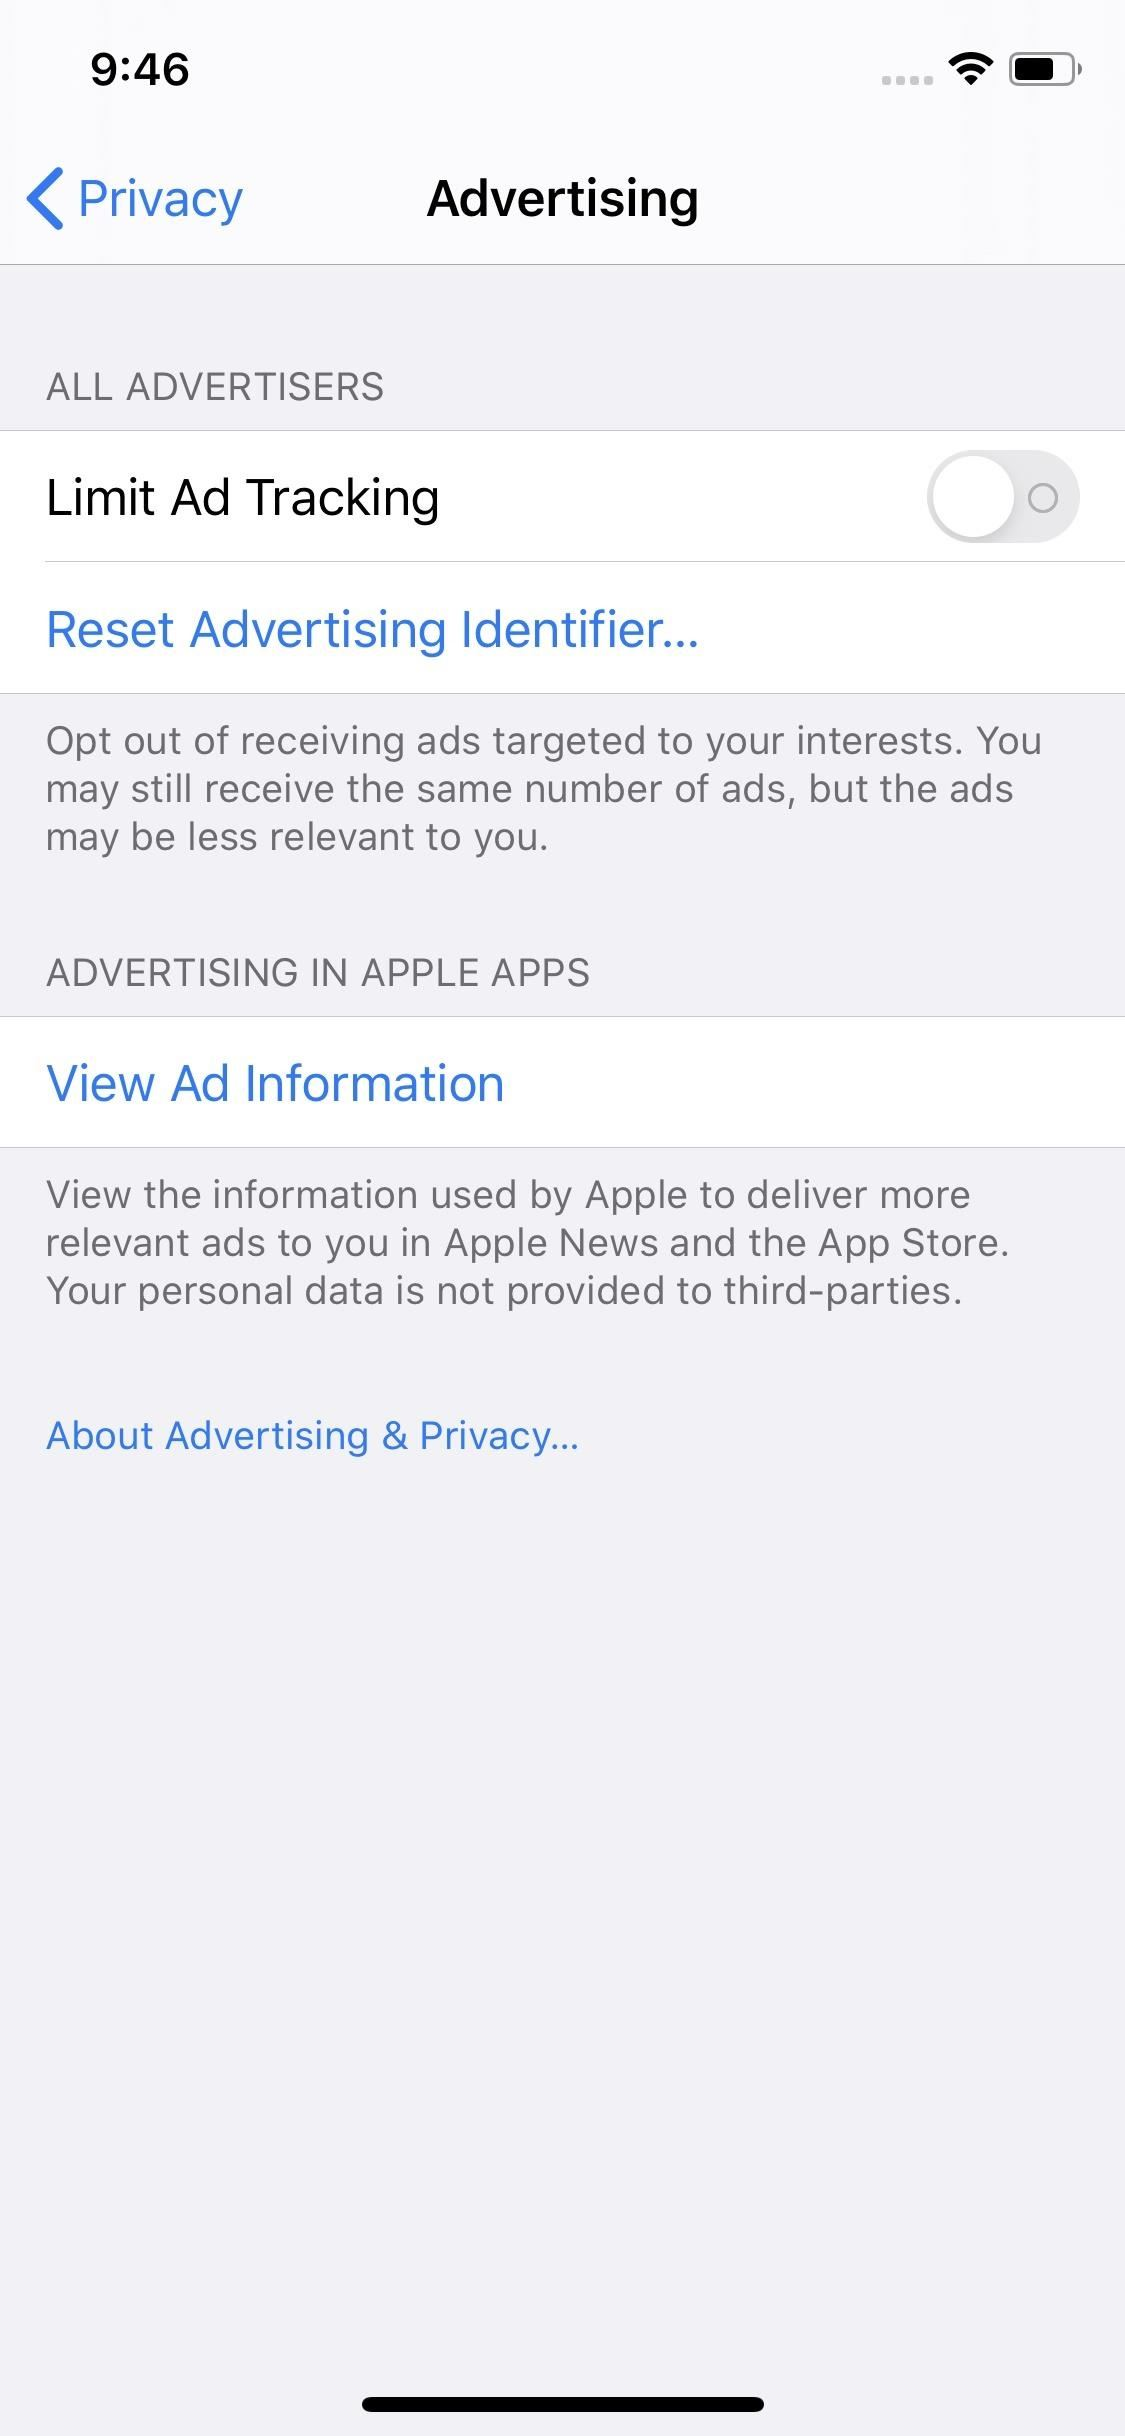 https://img.gadgethacks.com/img/87/57/63717691660062/0/stop-ads-from-spying-your-iphone-activity.w1456.jpg